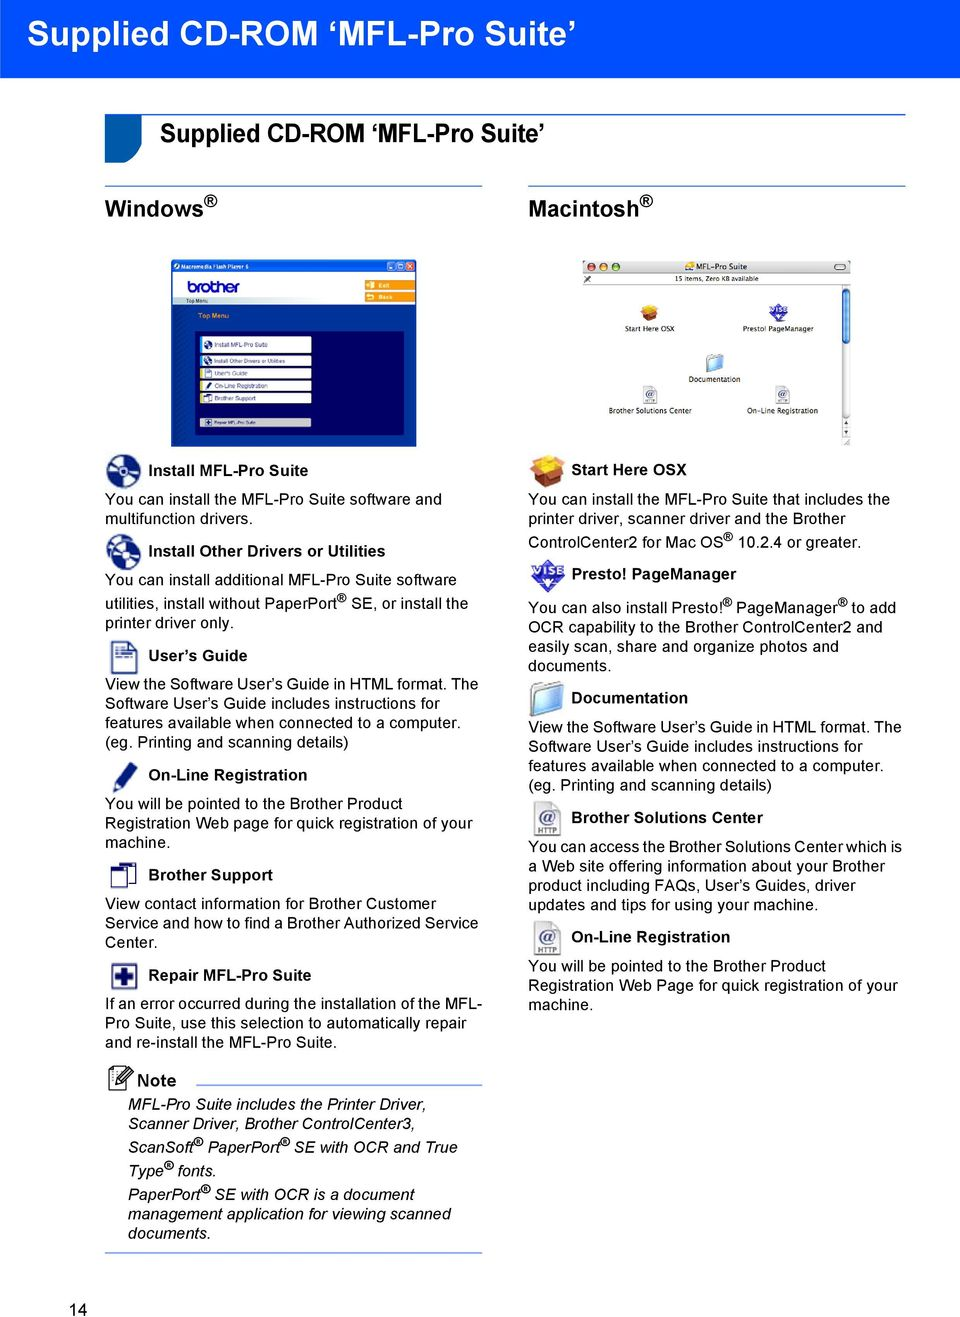 User s Guide View the Software User s Guide in HTML format. The Software User s Guide includes instructions for features available when connected to a computer. (eg.